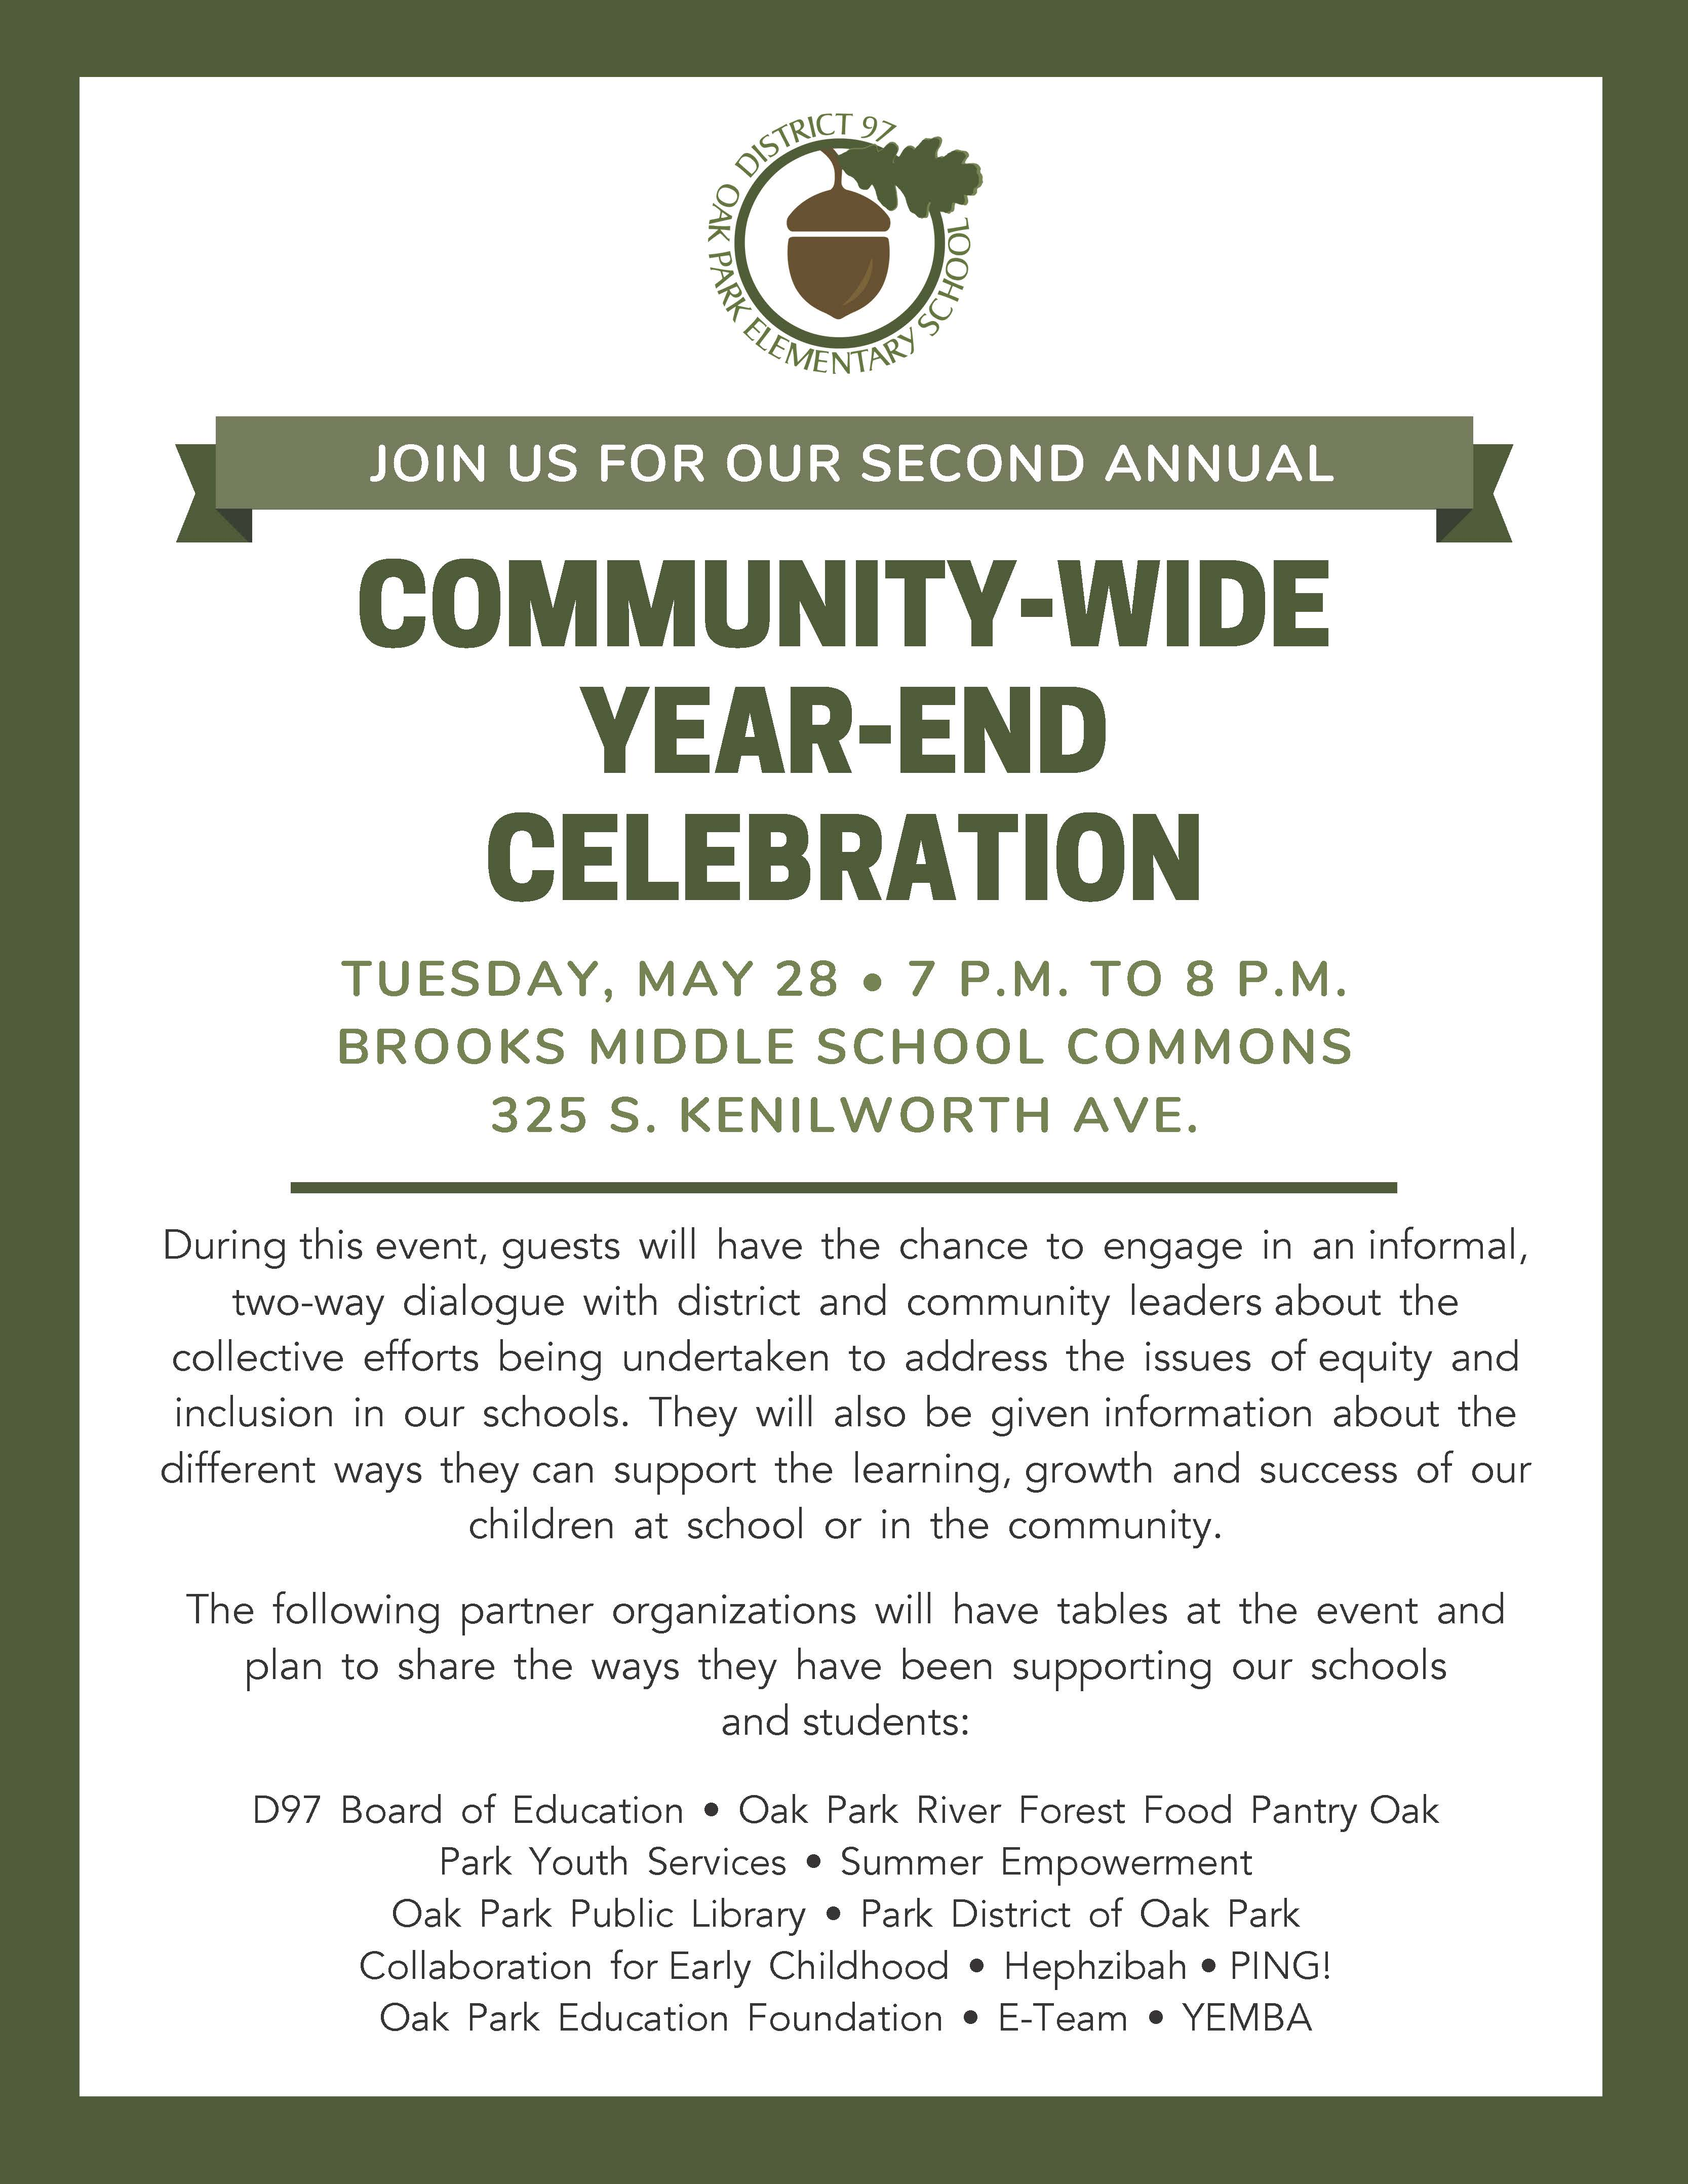 Community-Wide Year-End Celebration Flyer